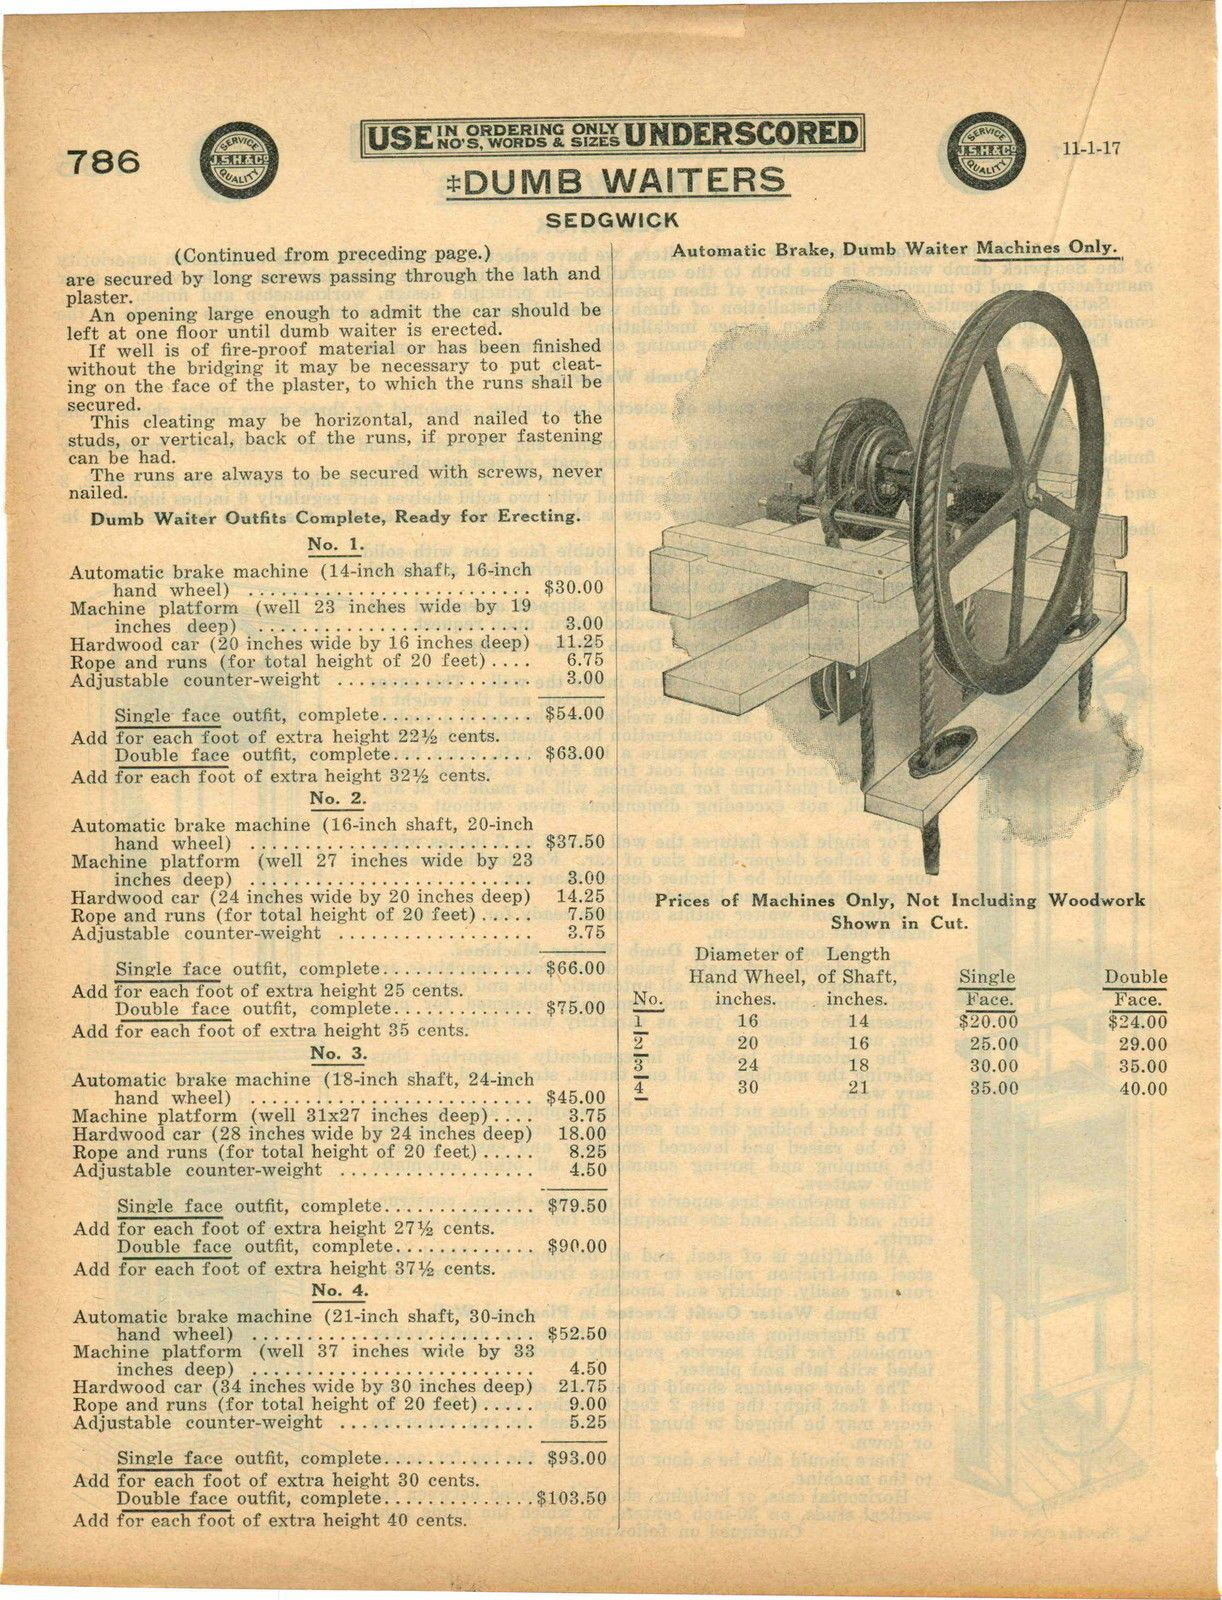 1917 Ad Sedgwick Dumb Waiters Cars Pulley Assembly Diagram Drawings | eBay